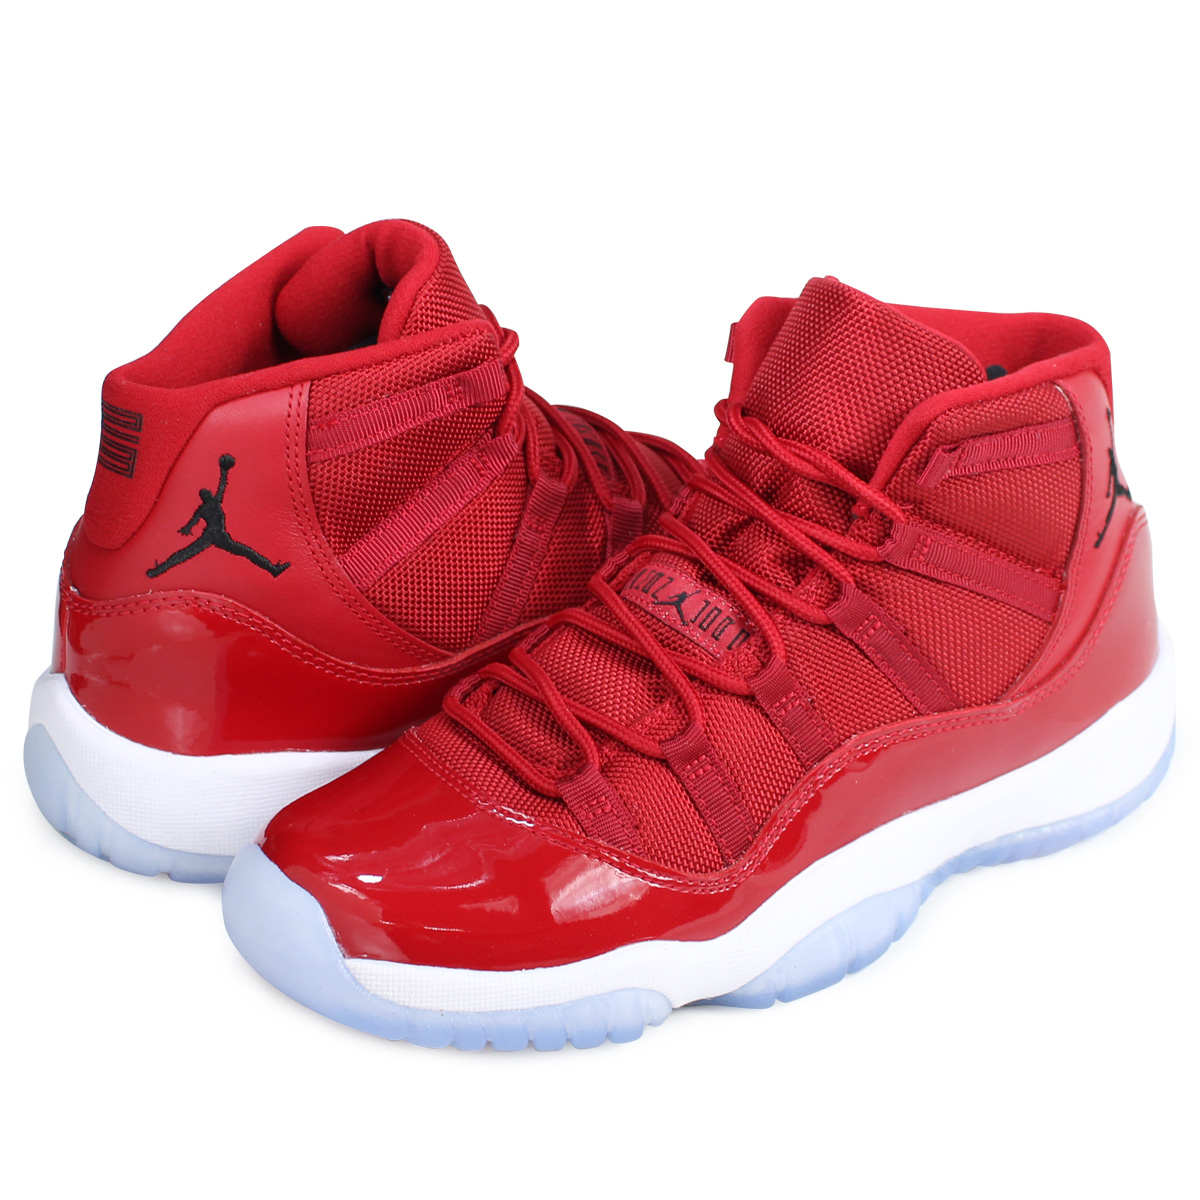 online store 4ff6c fd1d9 NIKE AIR JORDAN 11 BG WIN LIKE 96 Nike Air Jordan 11 Lady's sneakers  378,038-623 shoes red [load planned Shinnyu load in reservation product  12/22 ...